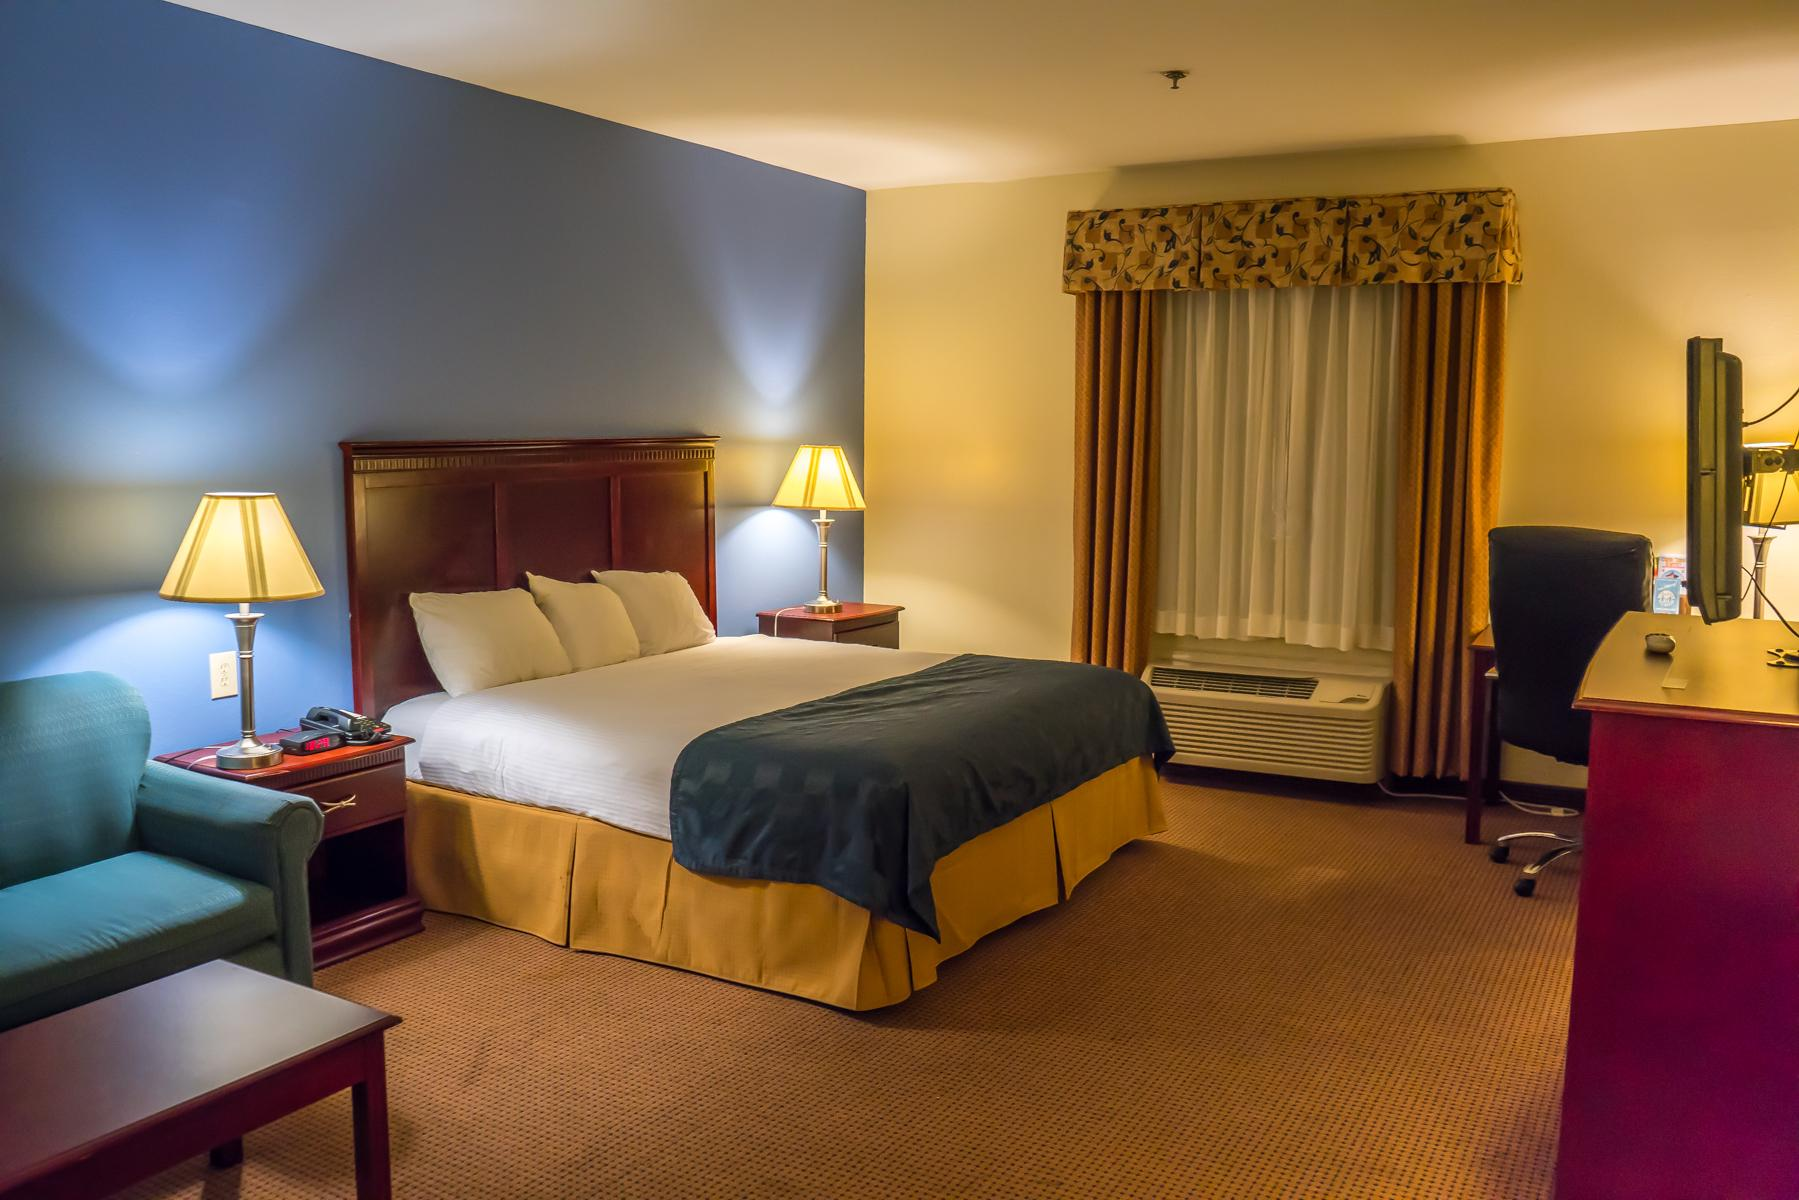 Inwood Suites 62 7 8 Carthage Hotel Deals Reviews